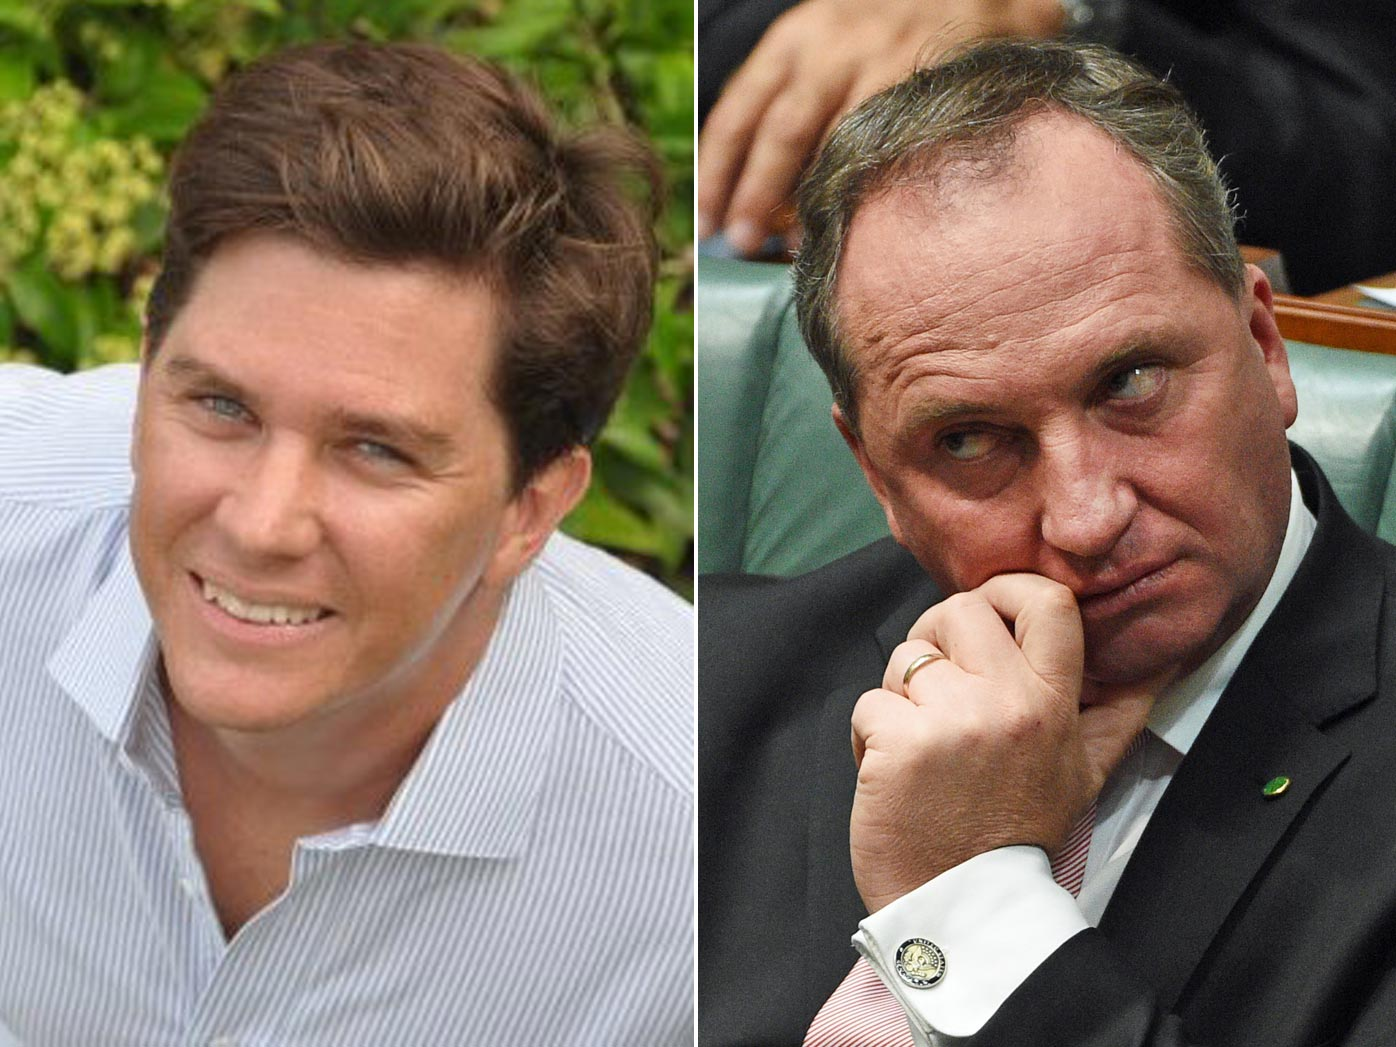 John Hancock and Barnaby Joyce